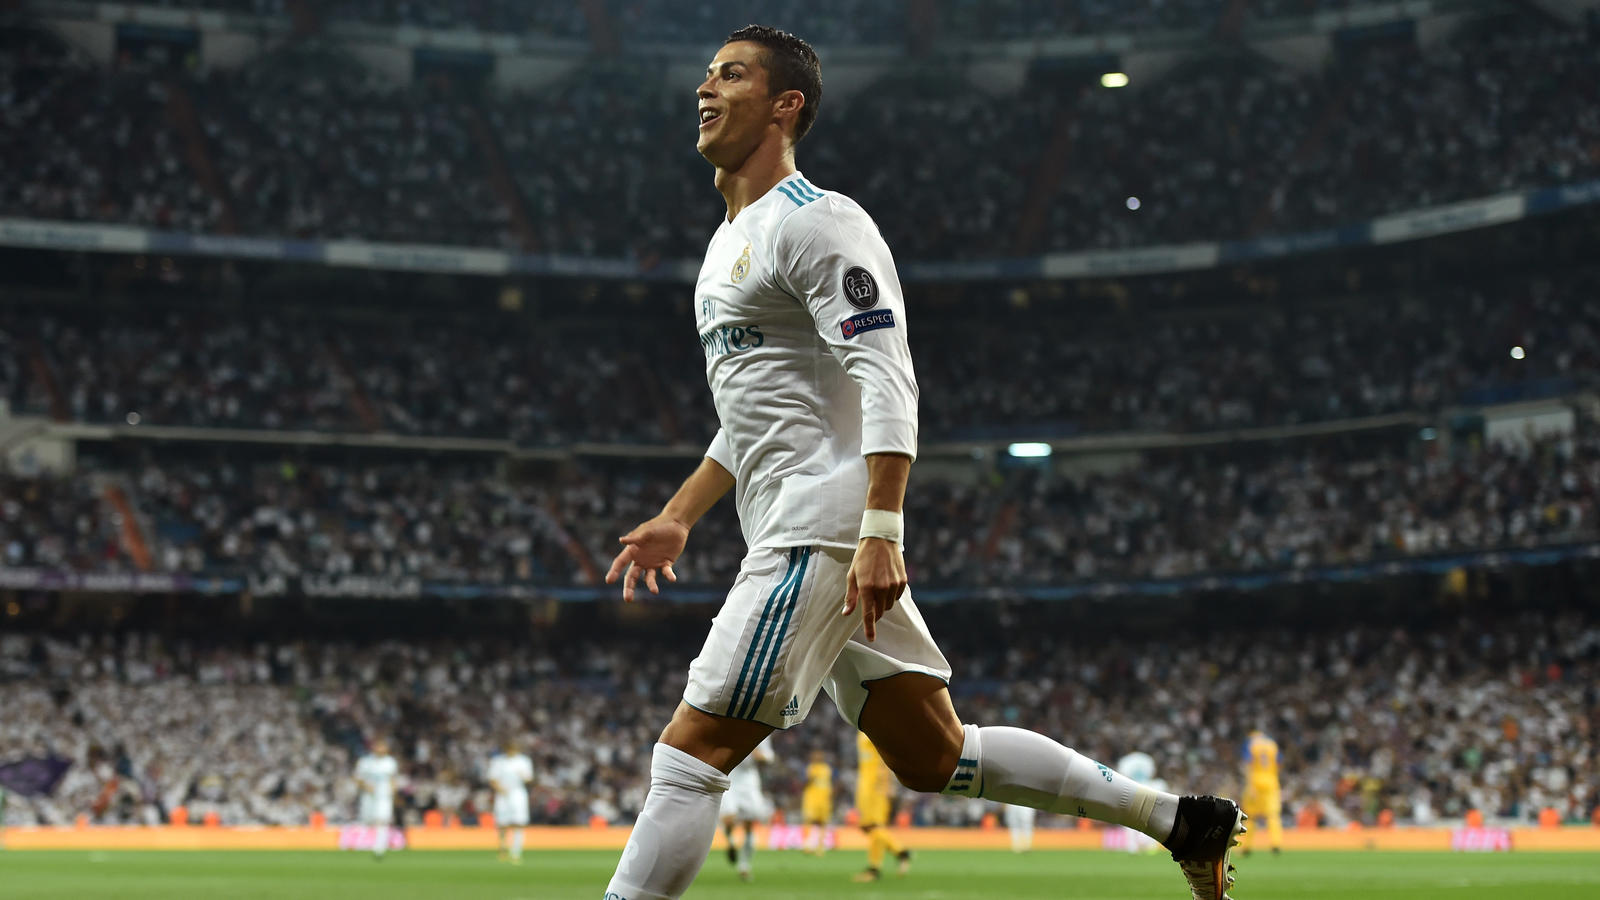 MADRID, SPAIN - SEPTEMBER 13: Cristiano Ronaldo of Real Madrid celebrates scoring his sides first goal during the UEFA Champions League group H match between Real Madrid and APOEL Nikosia at Estadio Santiago Bernabeu on September 13, 2017 in Madrid,